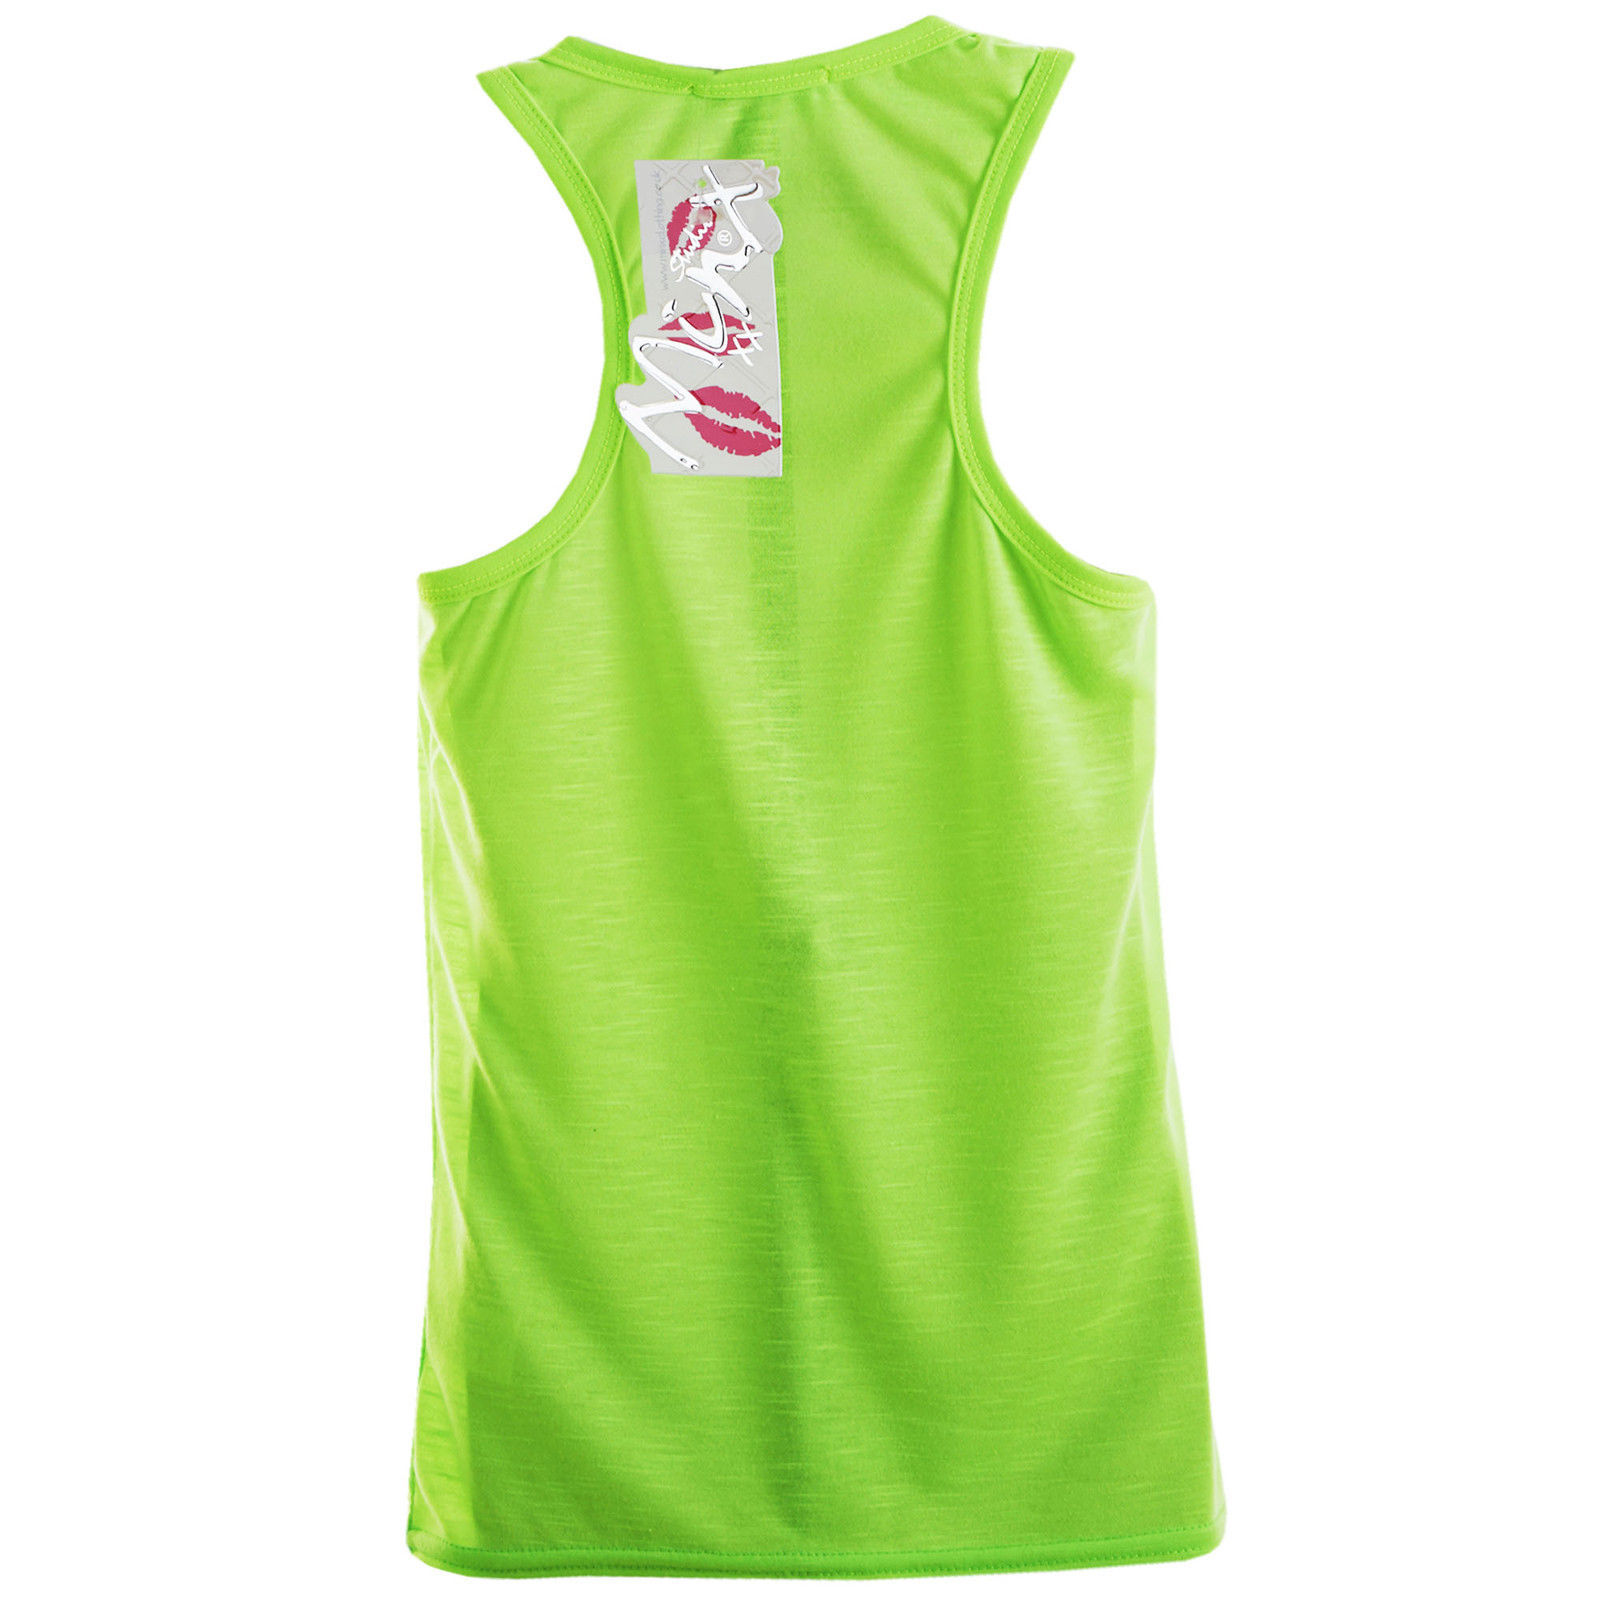 Buy low price, high quality bright vest tops with worldwide shipping on appzdnatw.cf